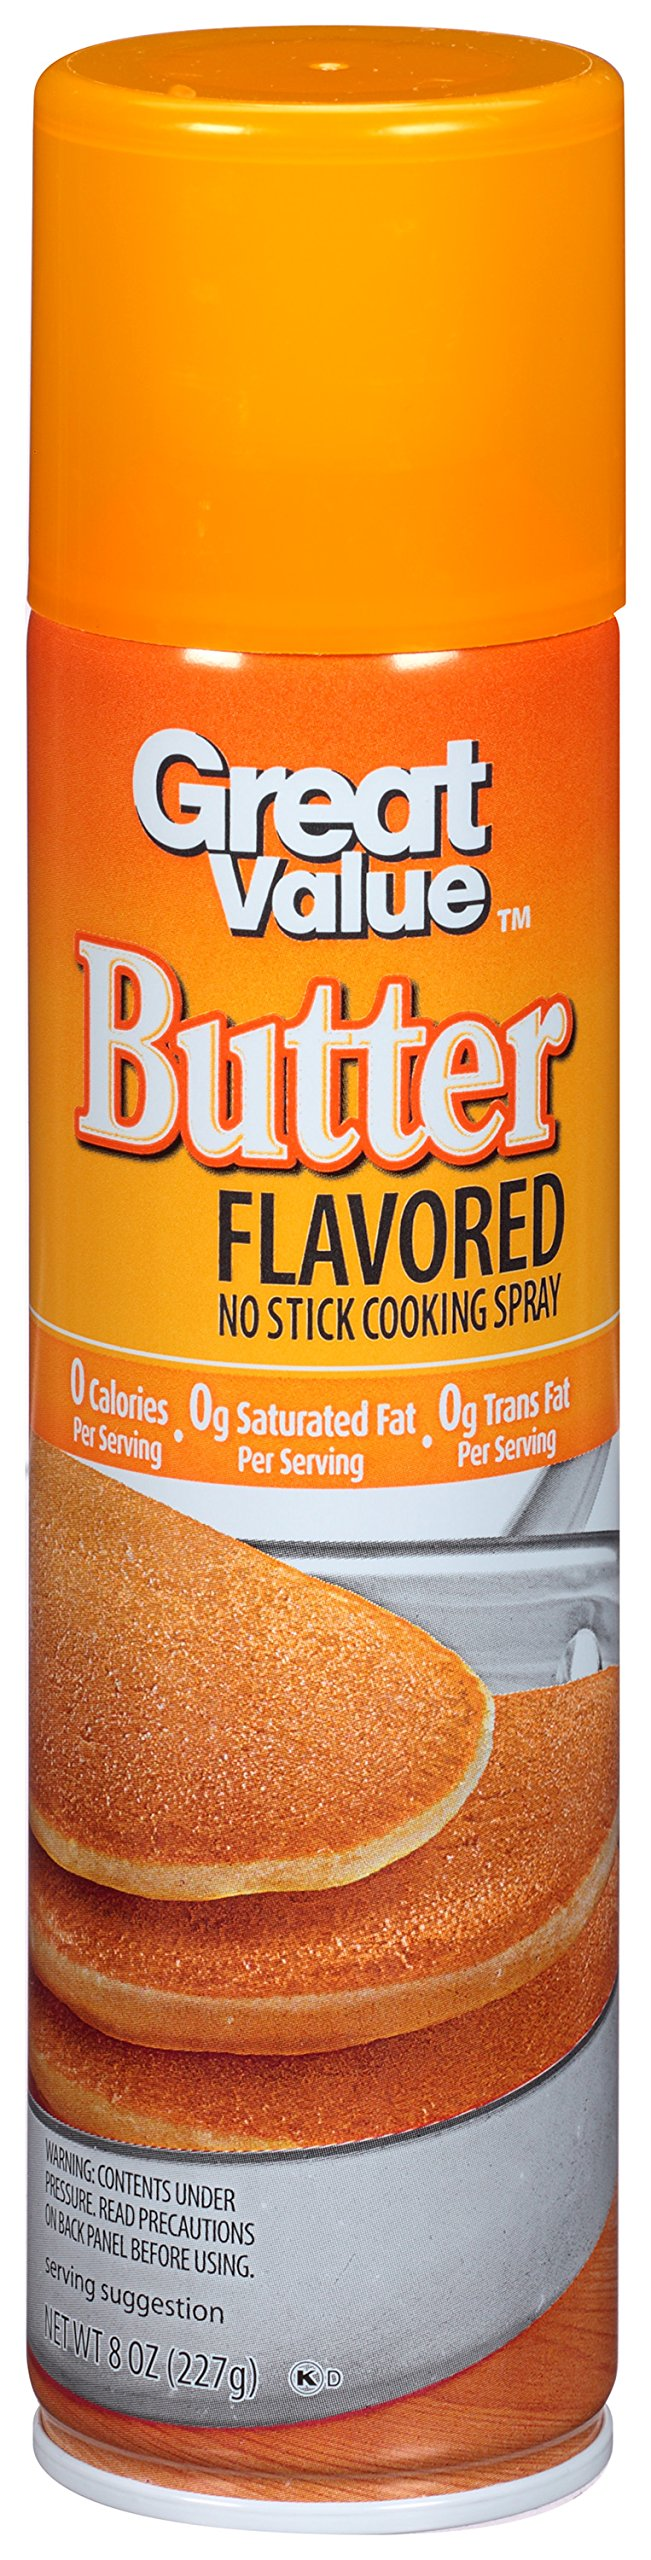 PACK OF 12 - Great Value Butter Flavored Cooking Spray, 8 oz